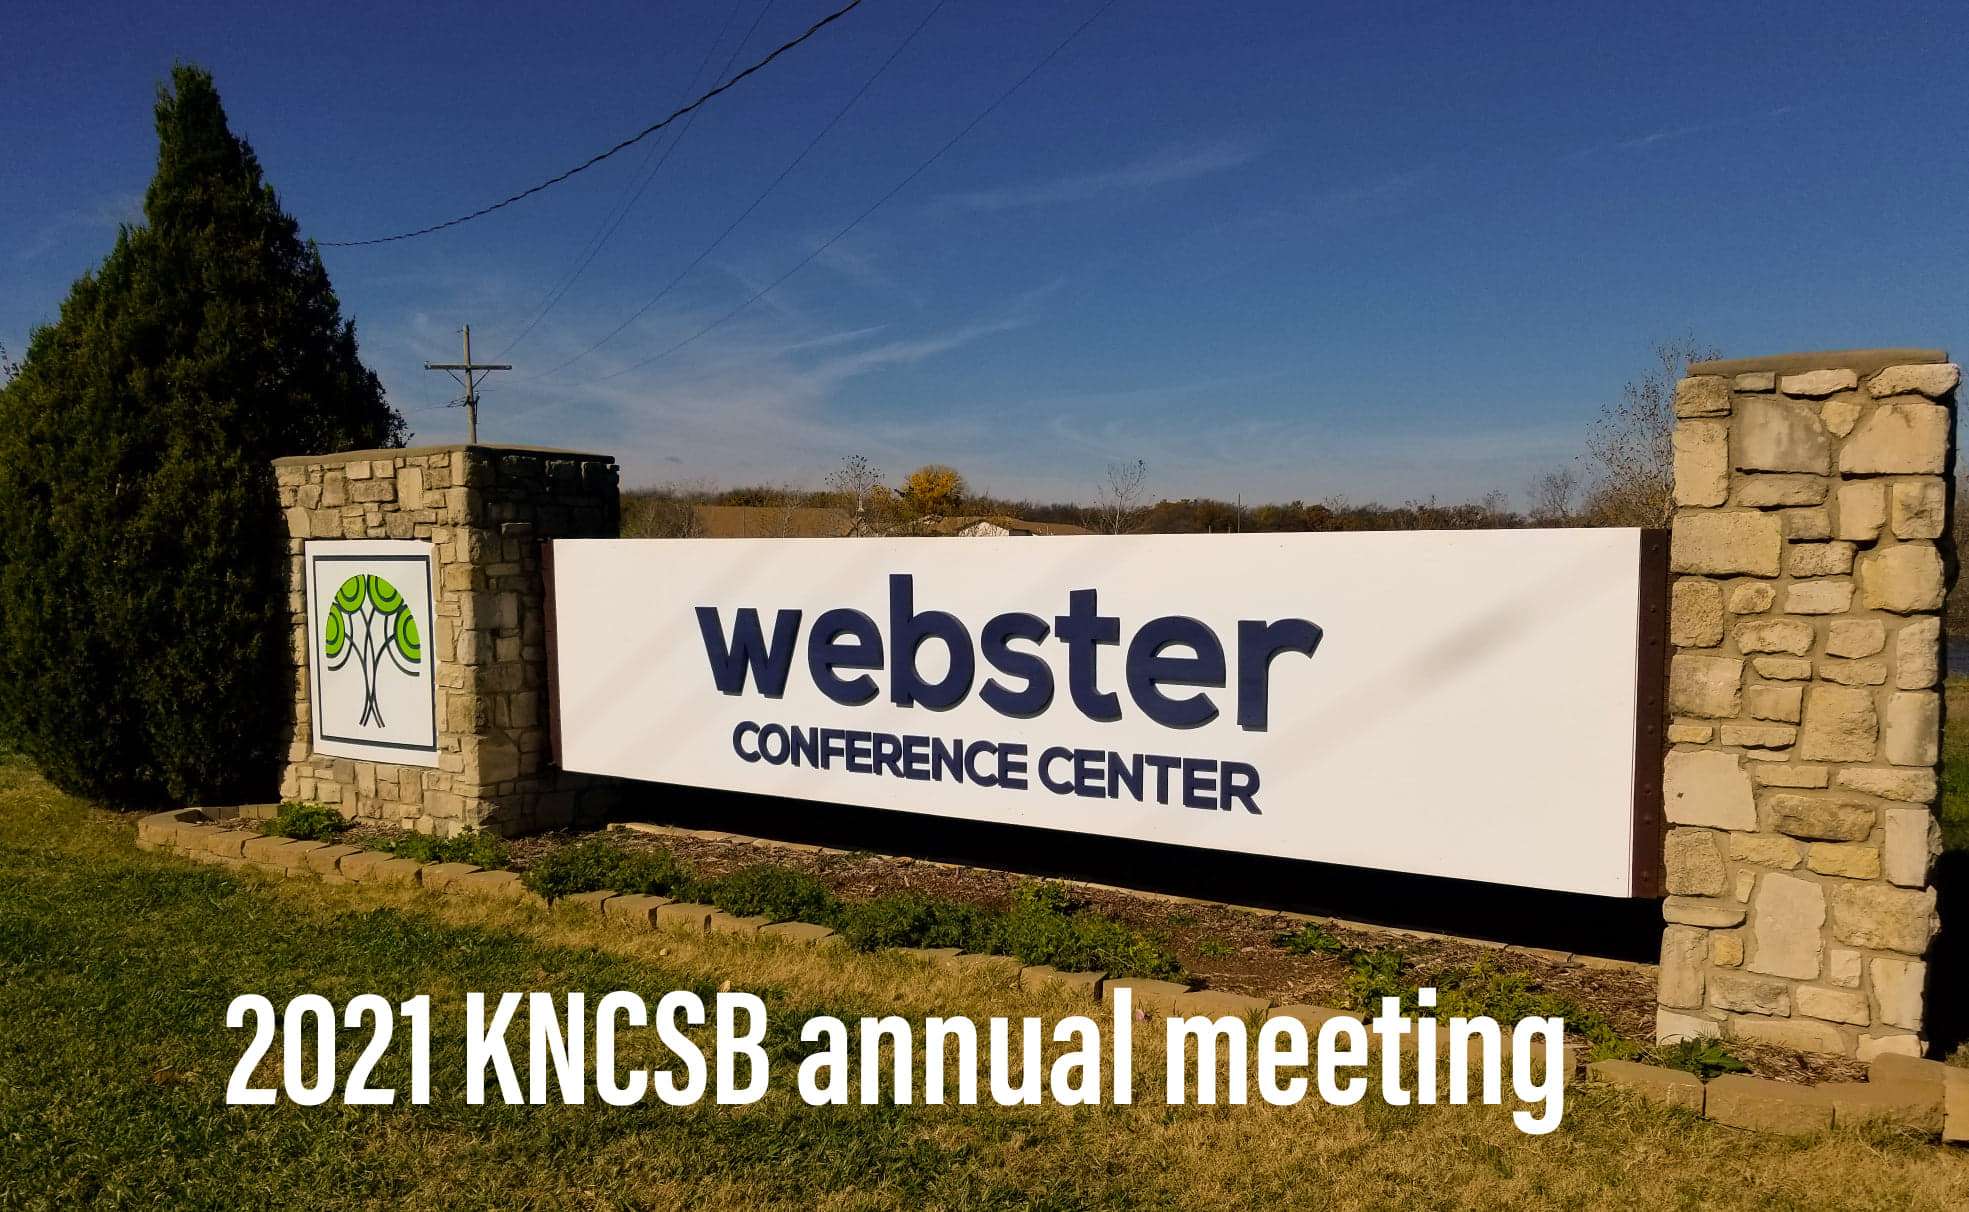 Webster Conference Center to host KNCSB annual meeting